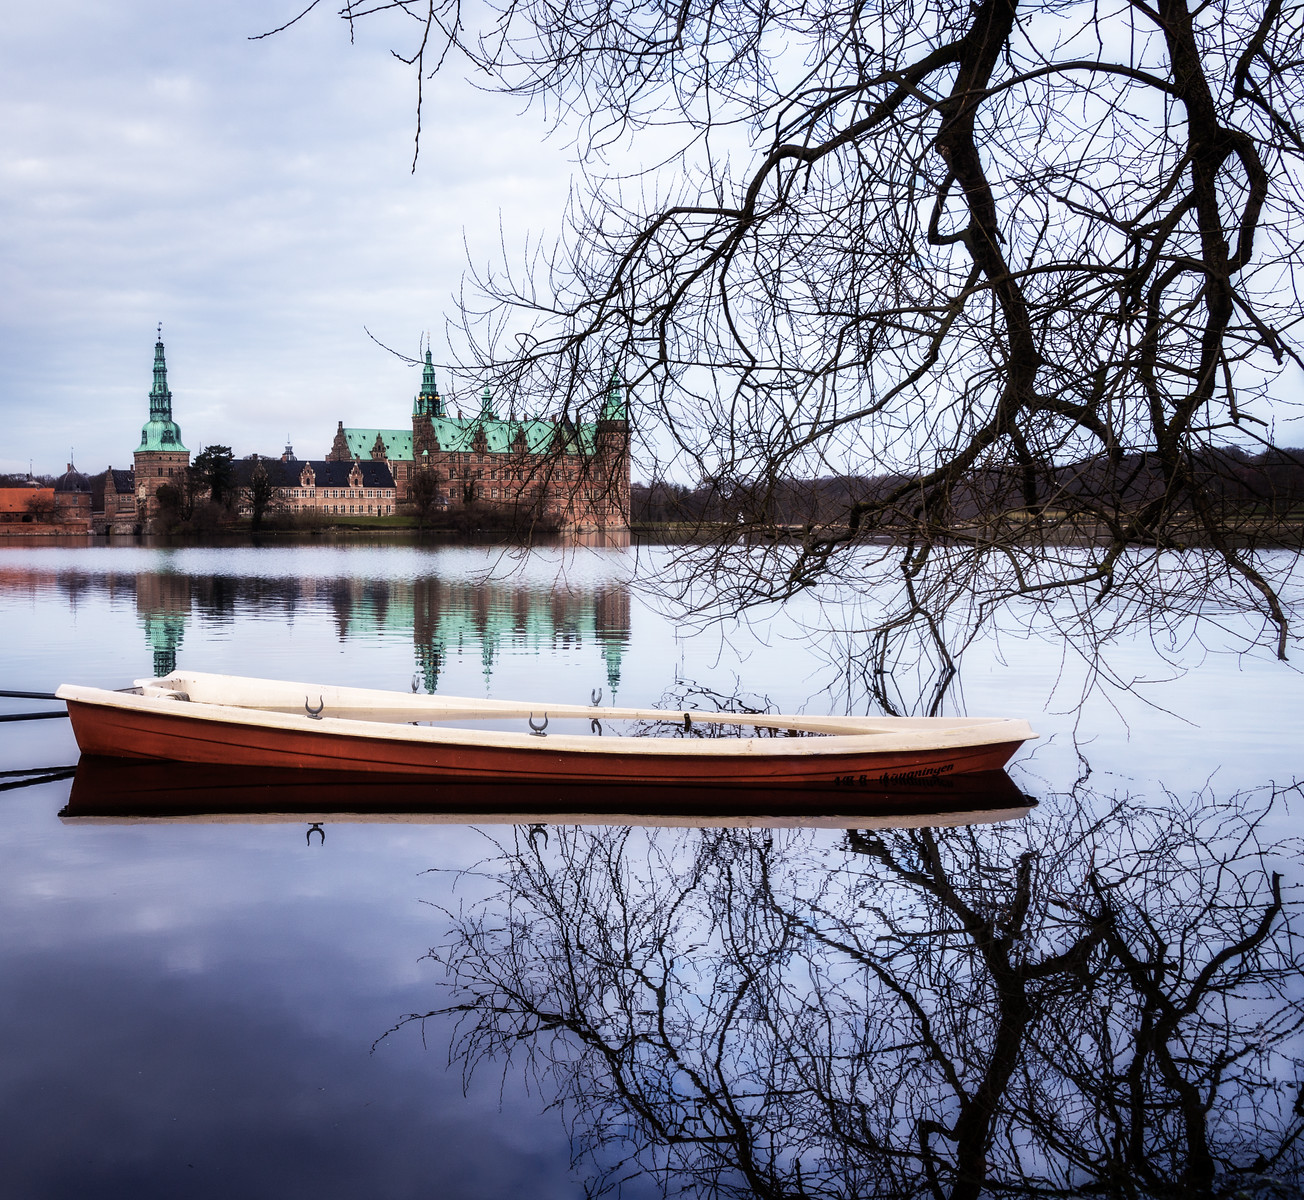 Frederiksborg castle with boat